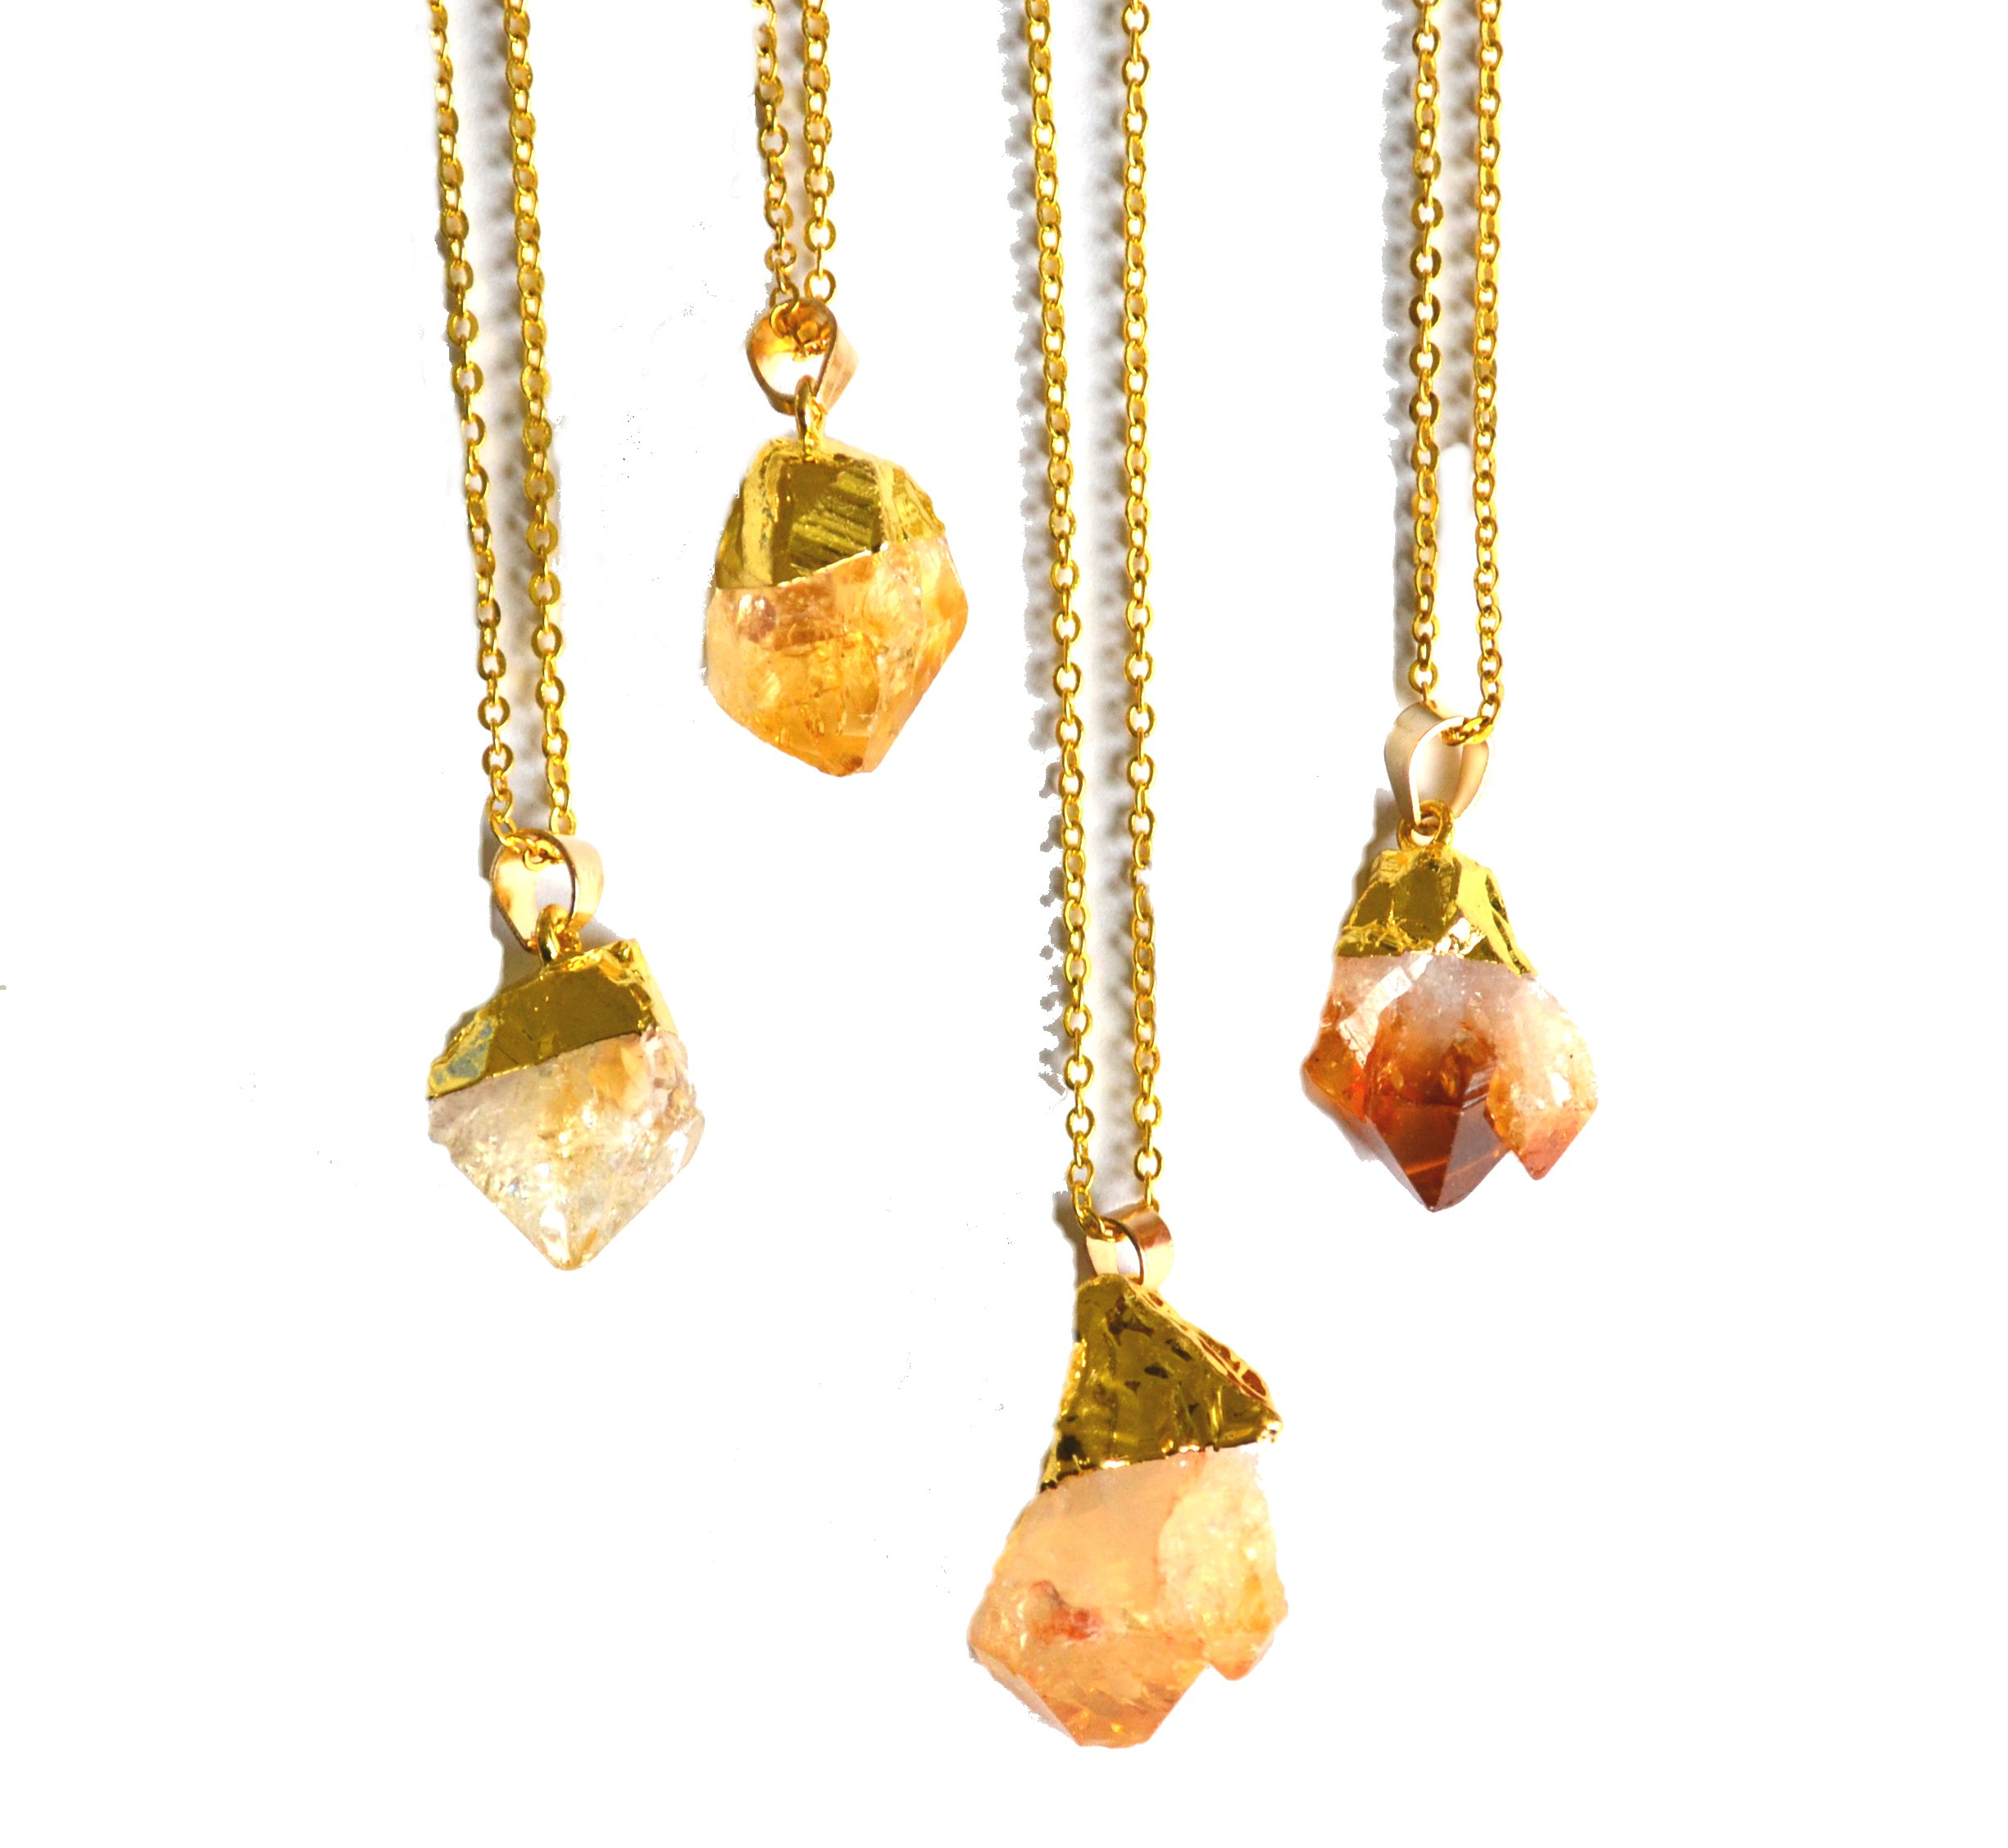 david pendant enlarged jewelry citrine cookie products necklaces yurman necklace the